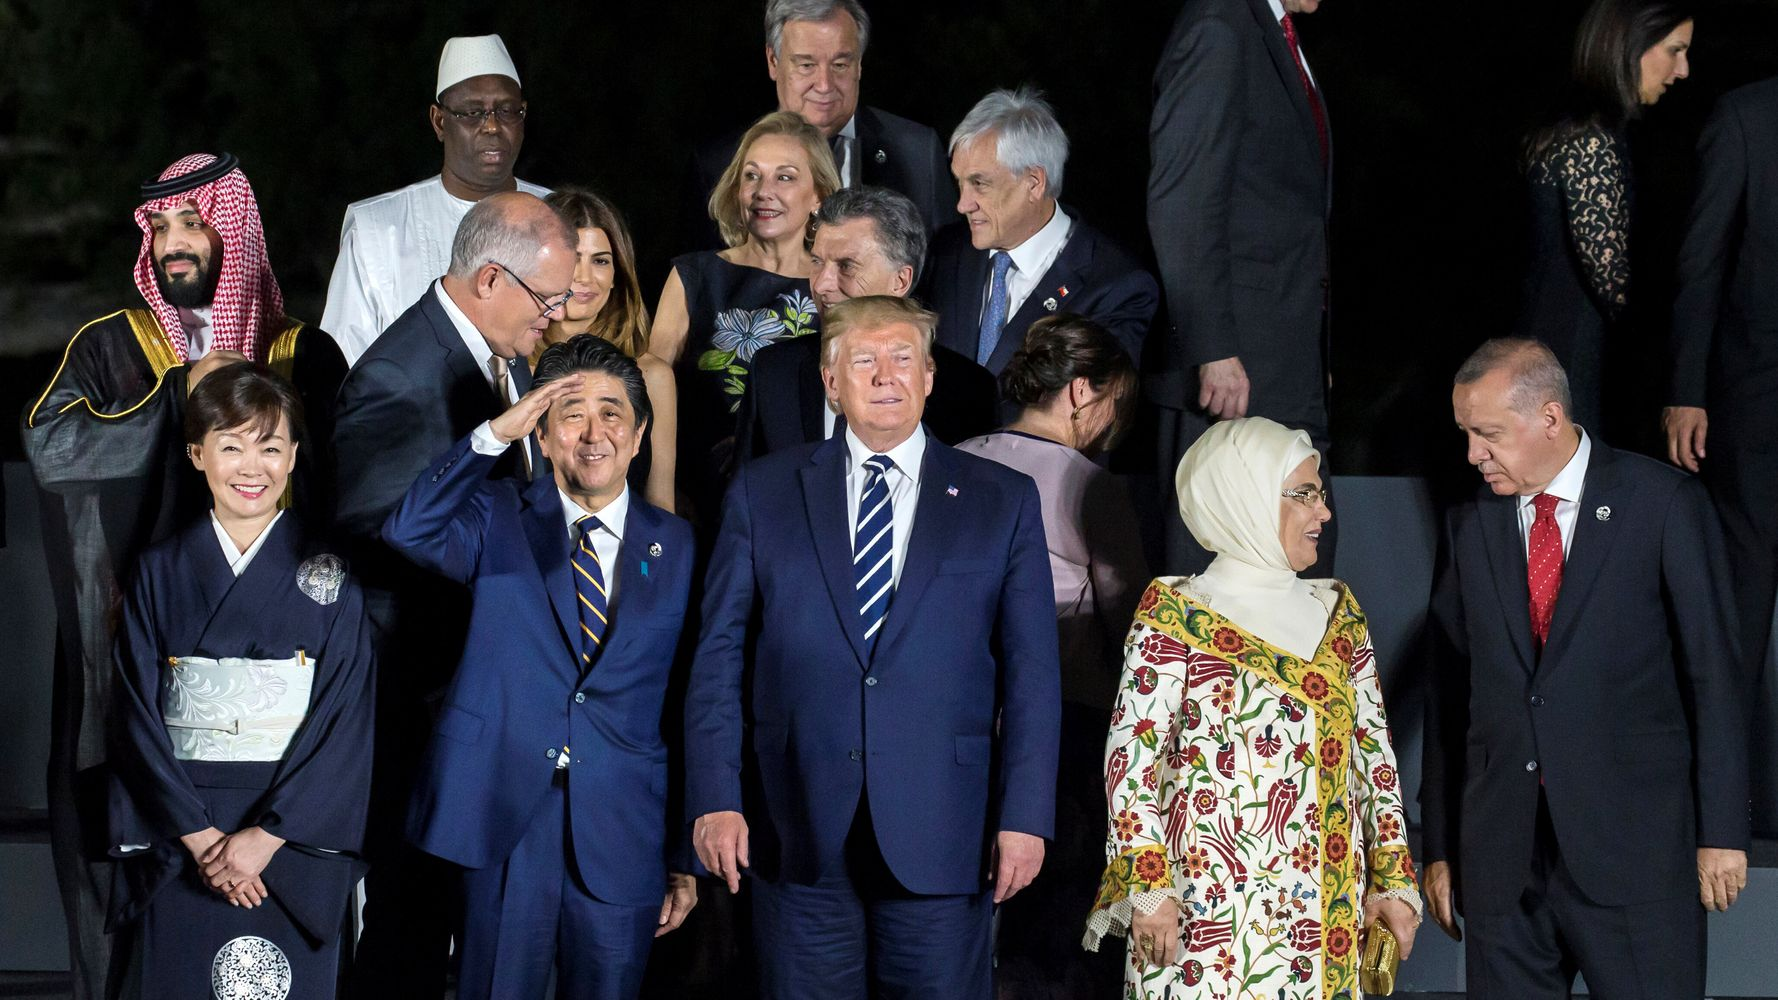 Foreign Leaders Plan For Trump-Fueled Chaos In The U.S.